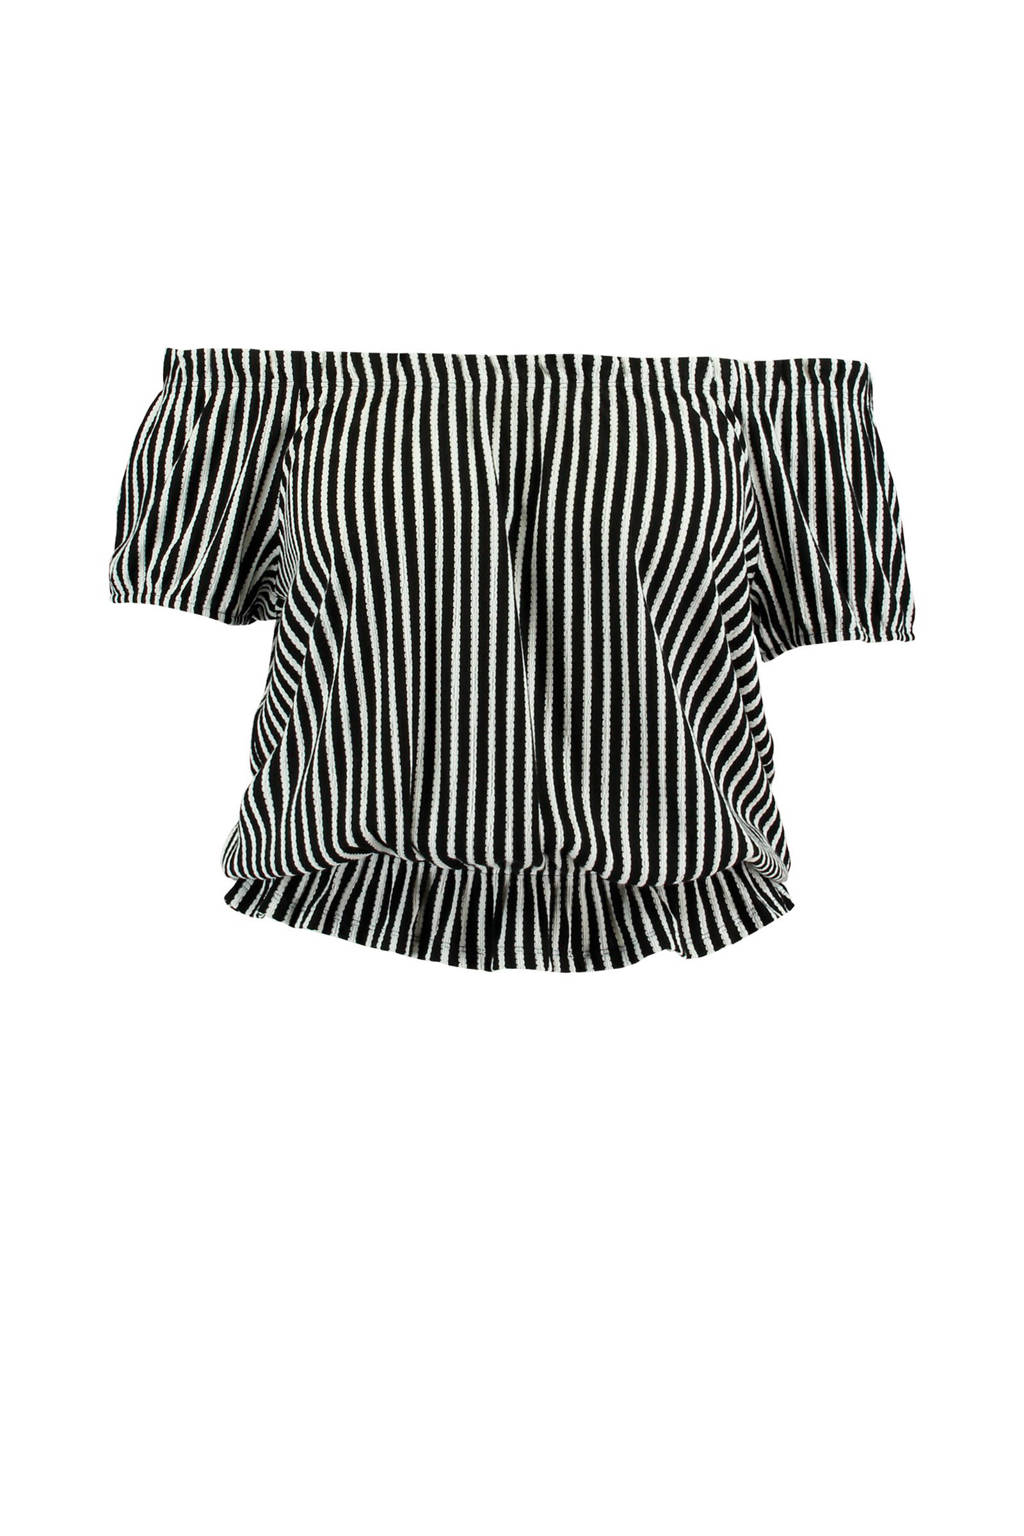 MS Mode gestreepte off shoulder top zwart, Zwart